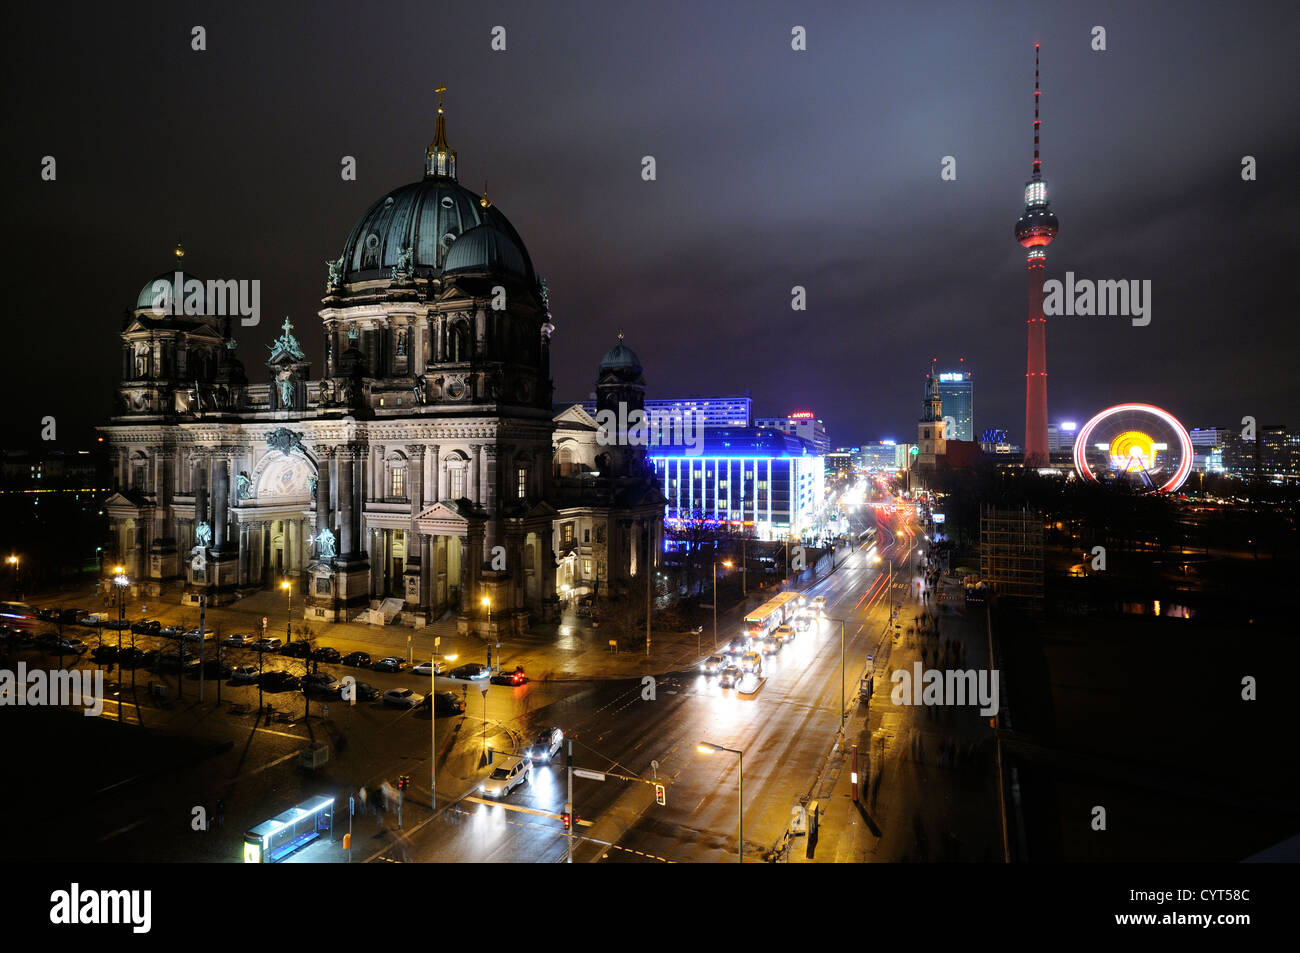 Berliner Dom, Berlin Cathedral, Television Tower, Alexanderplatz square, Ferris wheel, Christmas market, Berlin, - Stock Image